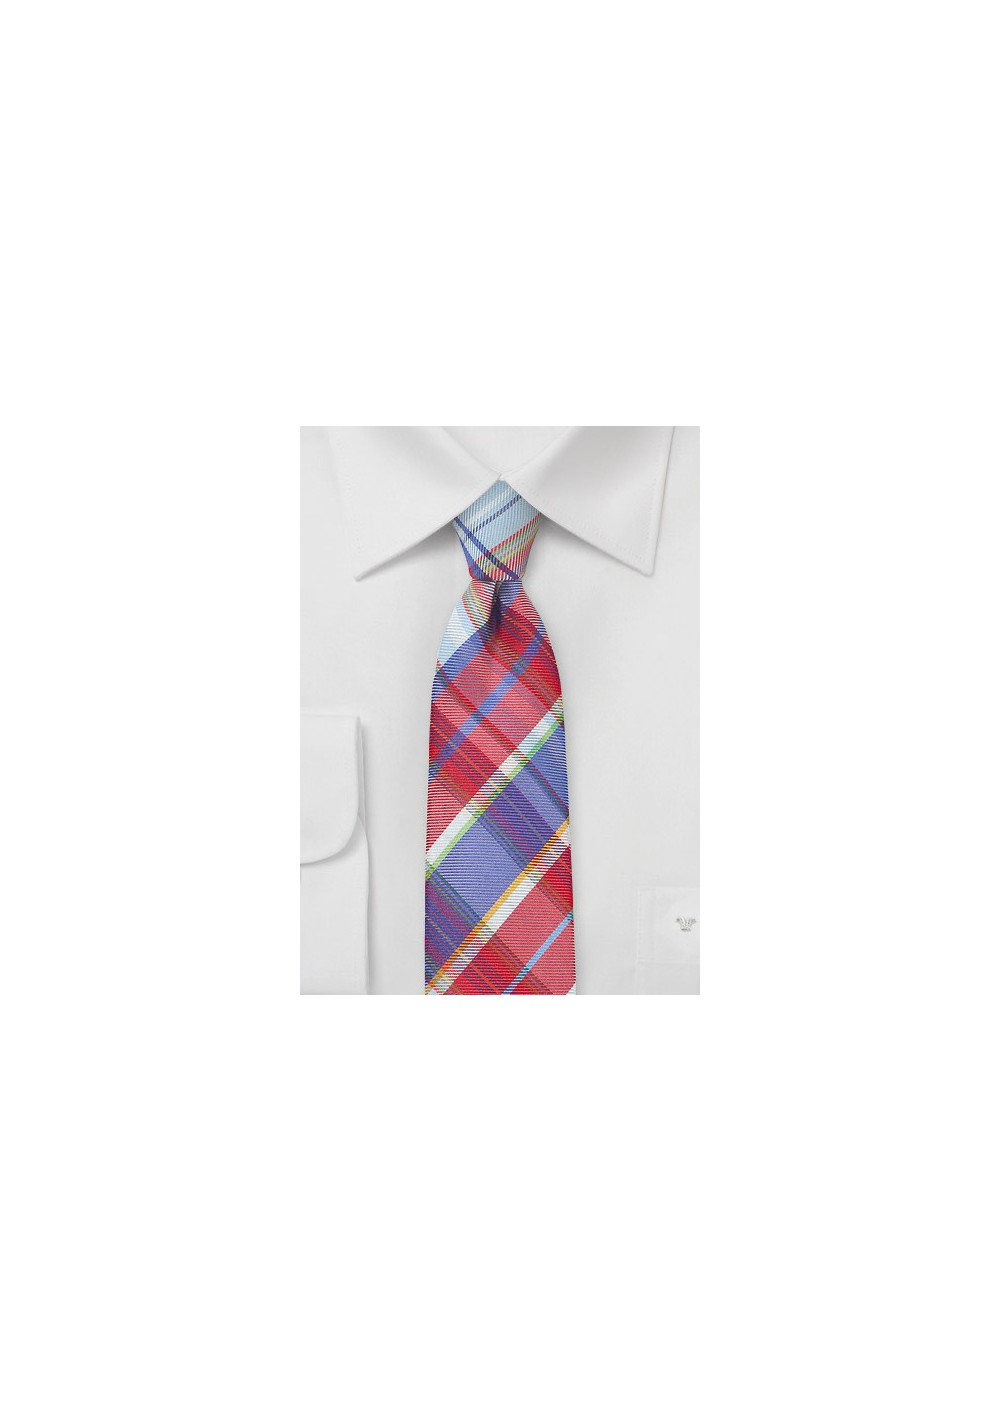 Designer Plaid Tie in Reds and Blues